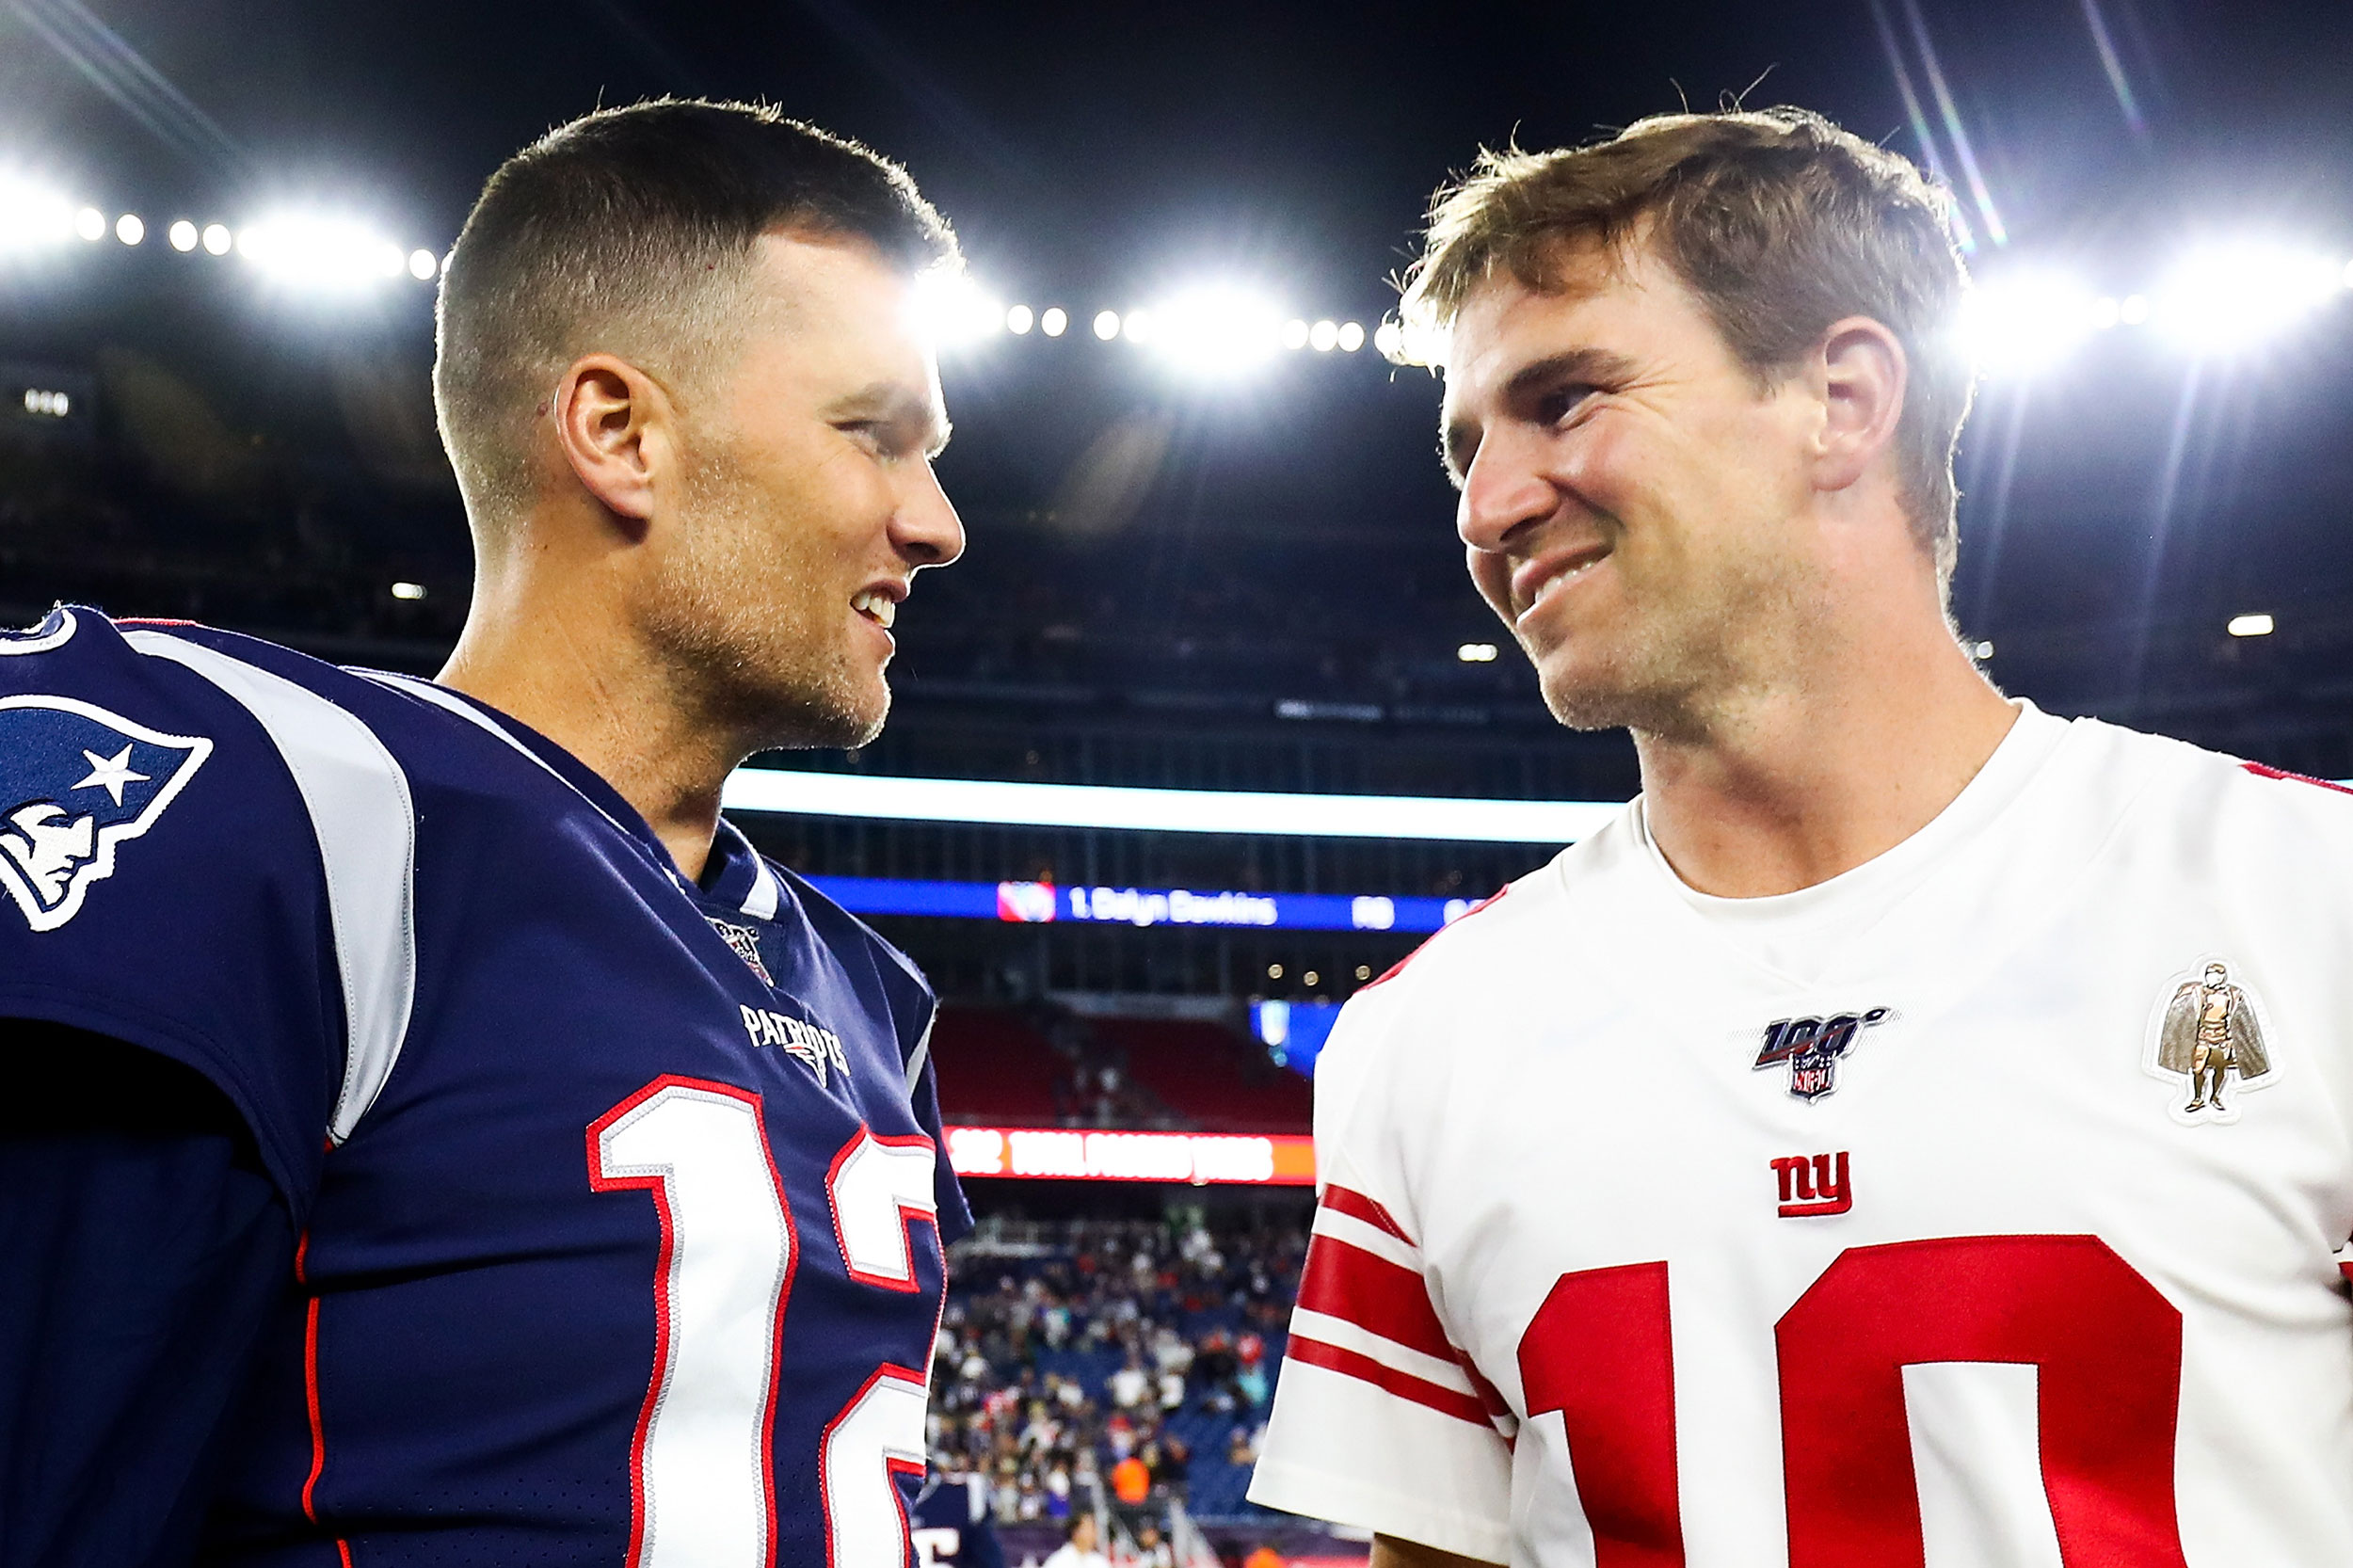 Eli Manning joined Twitter, and was immediately made fun of by Tom Brady